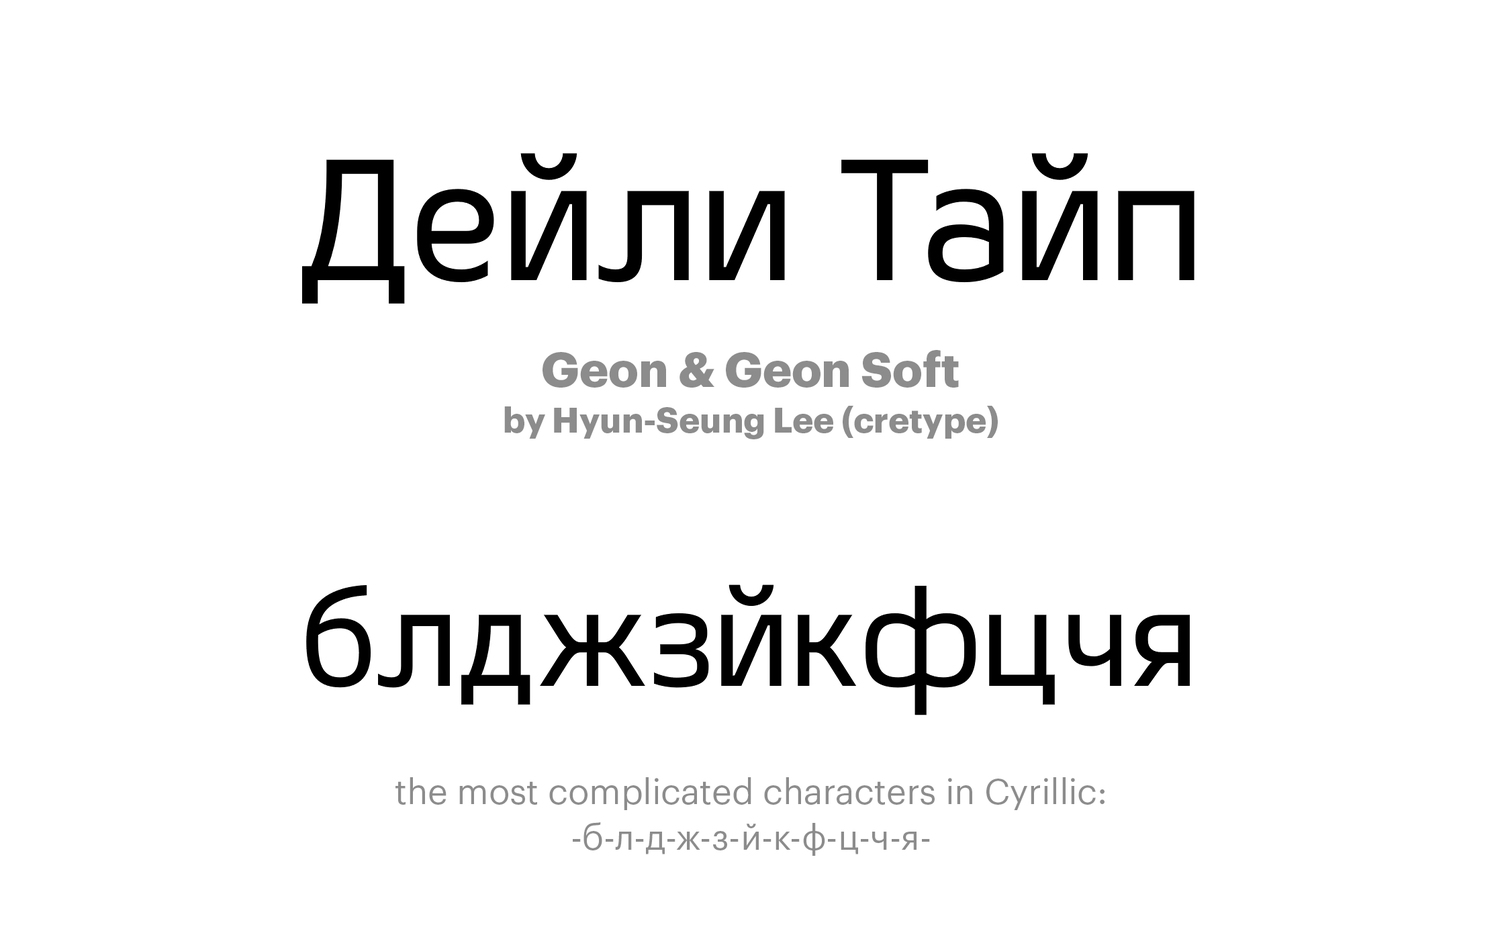 Geon-&-Geon-Soft-by-Hyun-Seung-Lee-(cretype)